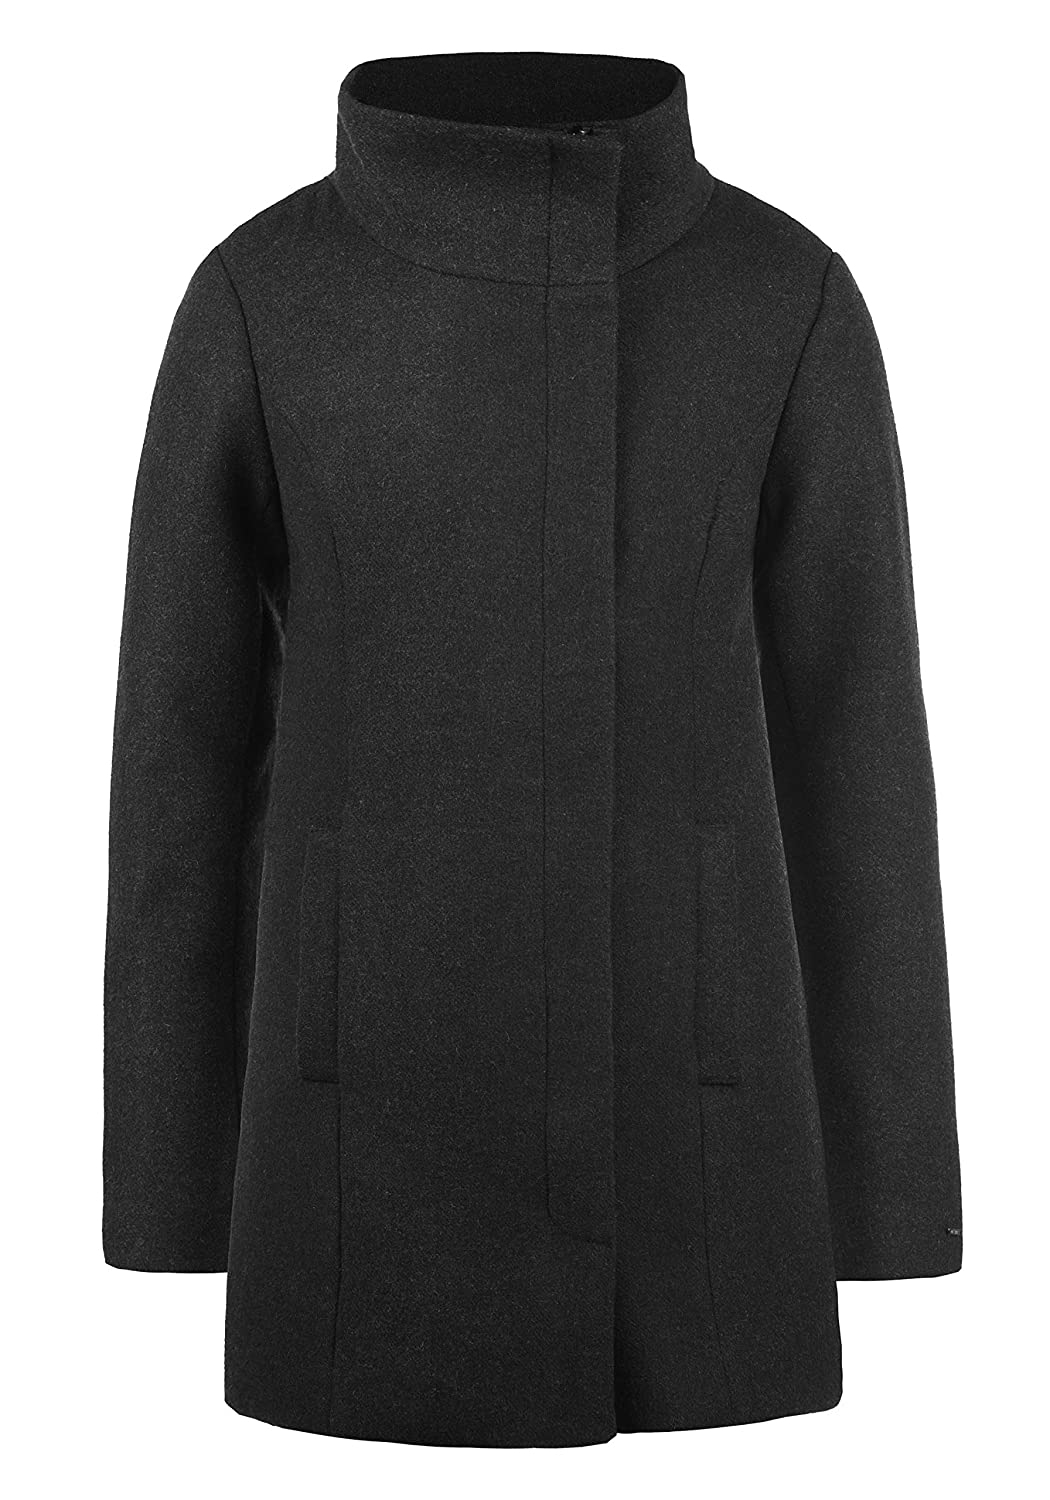 DESIRES Wolke Damen Wintermantel Wollmantel Winterjacke Mit Stehkragen